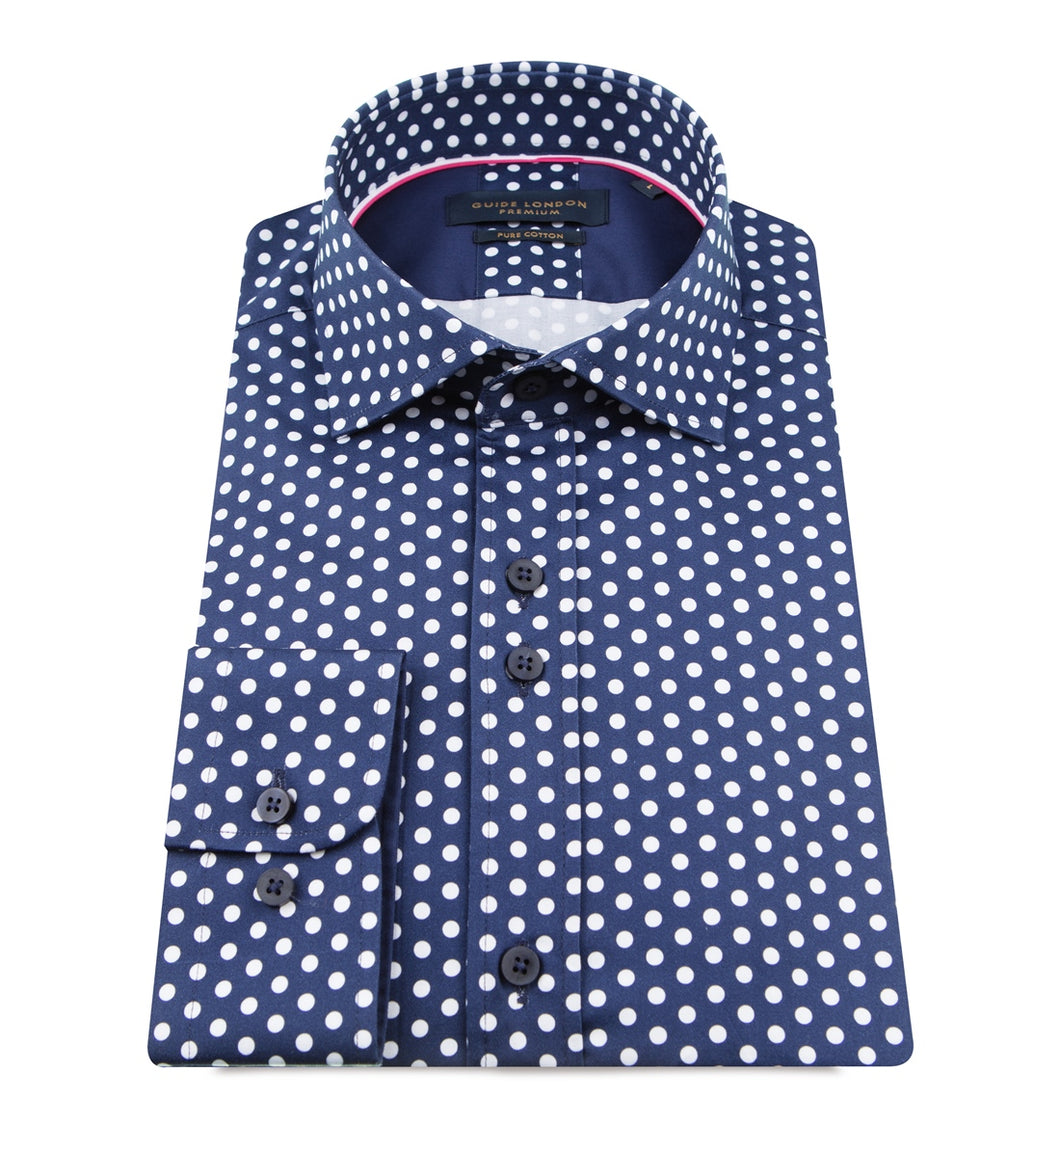 Guide London Polka Dot Shirt Navy White